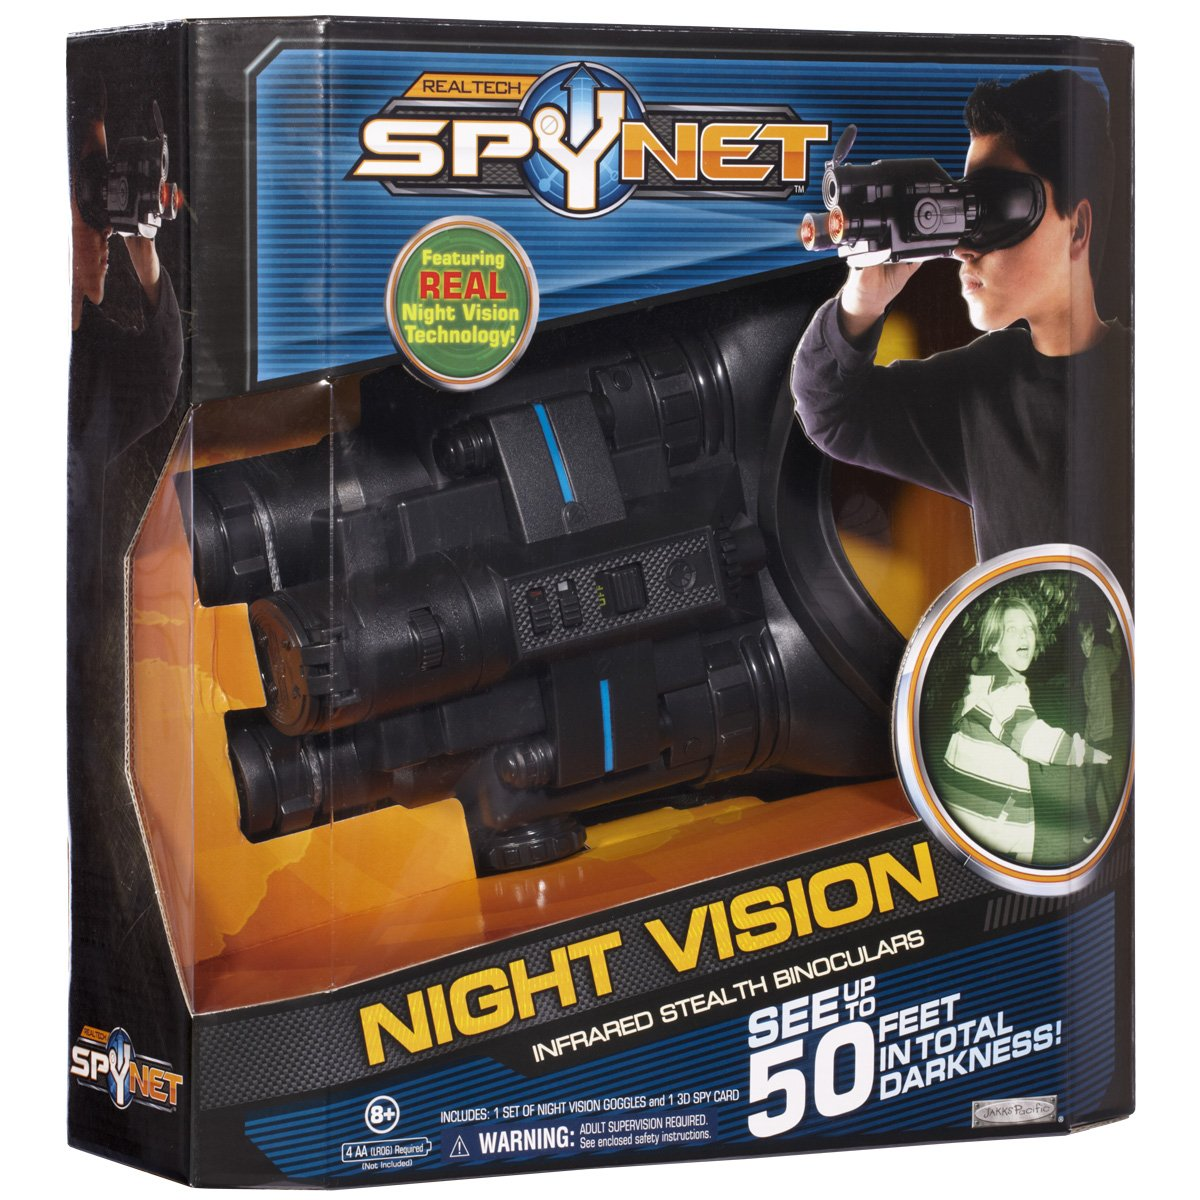 5181fa41e0424 Amazon.com  Spy Net Night Vision Infrared Stealth Binoculars  Toys   Games